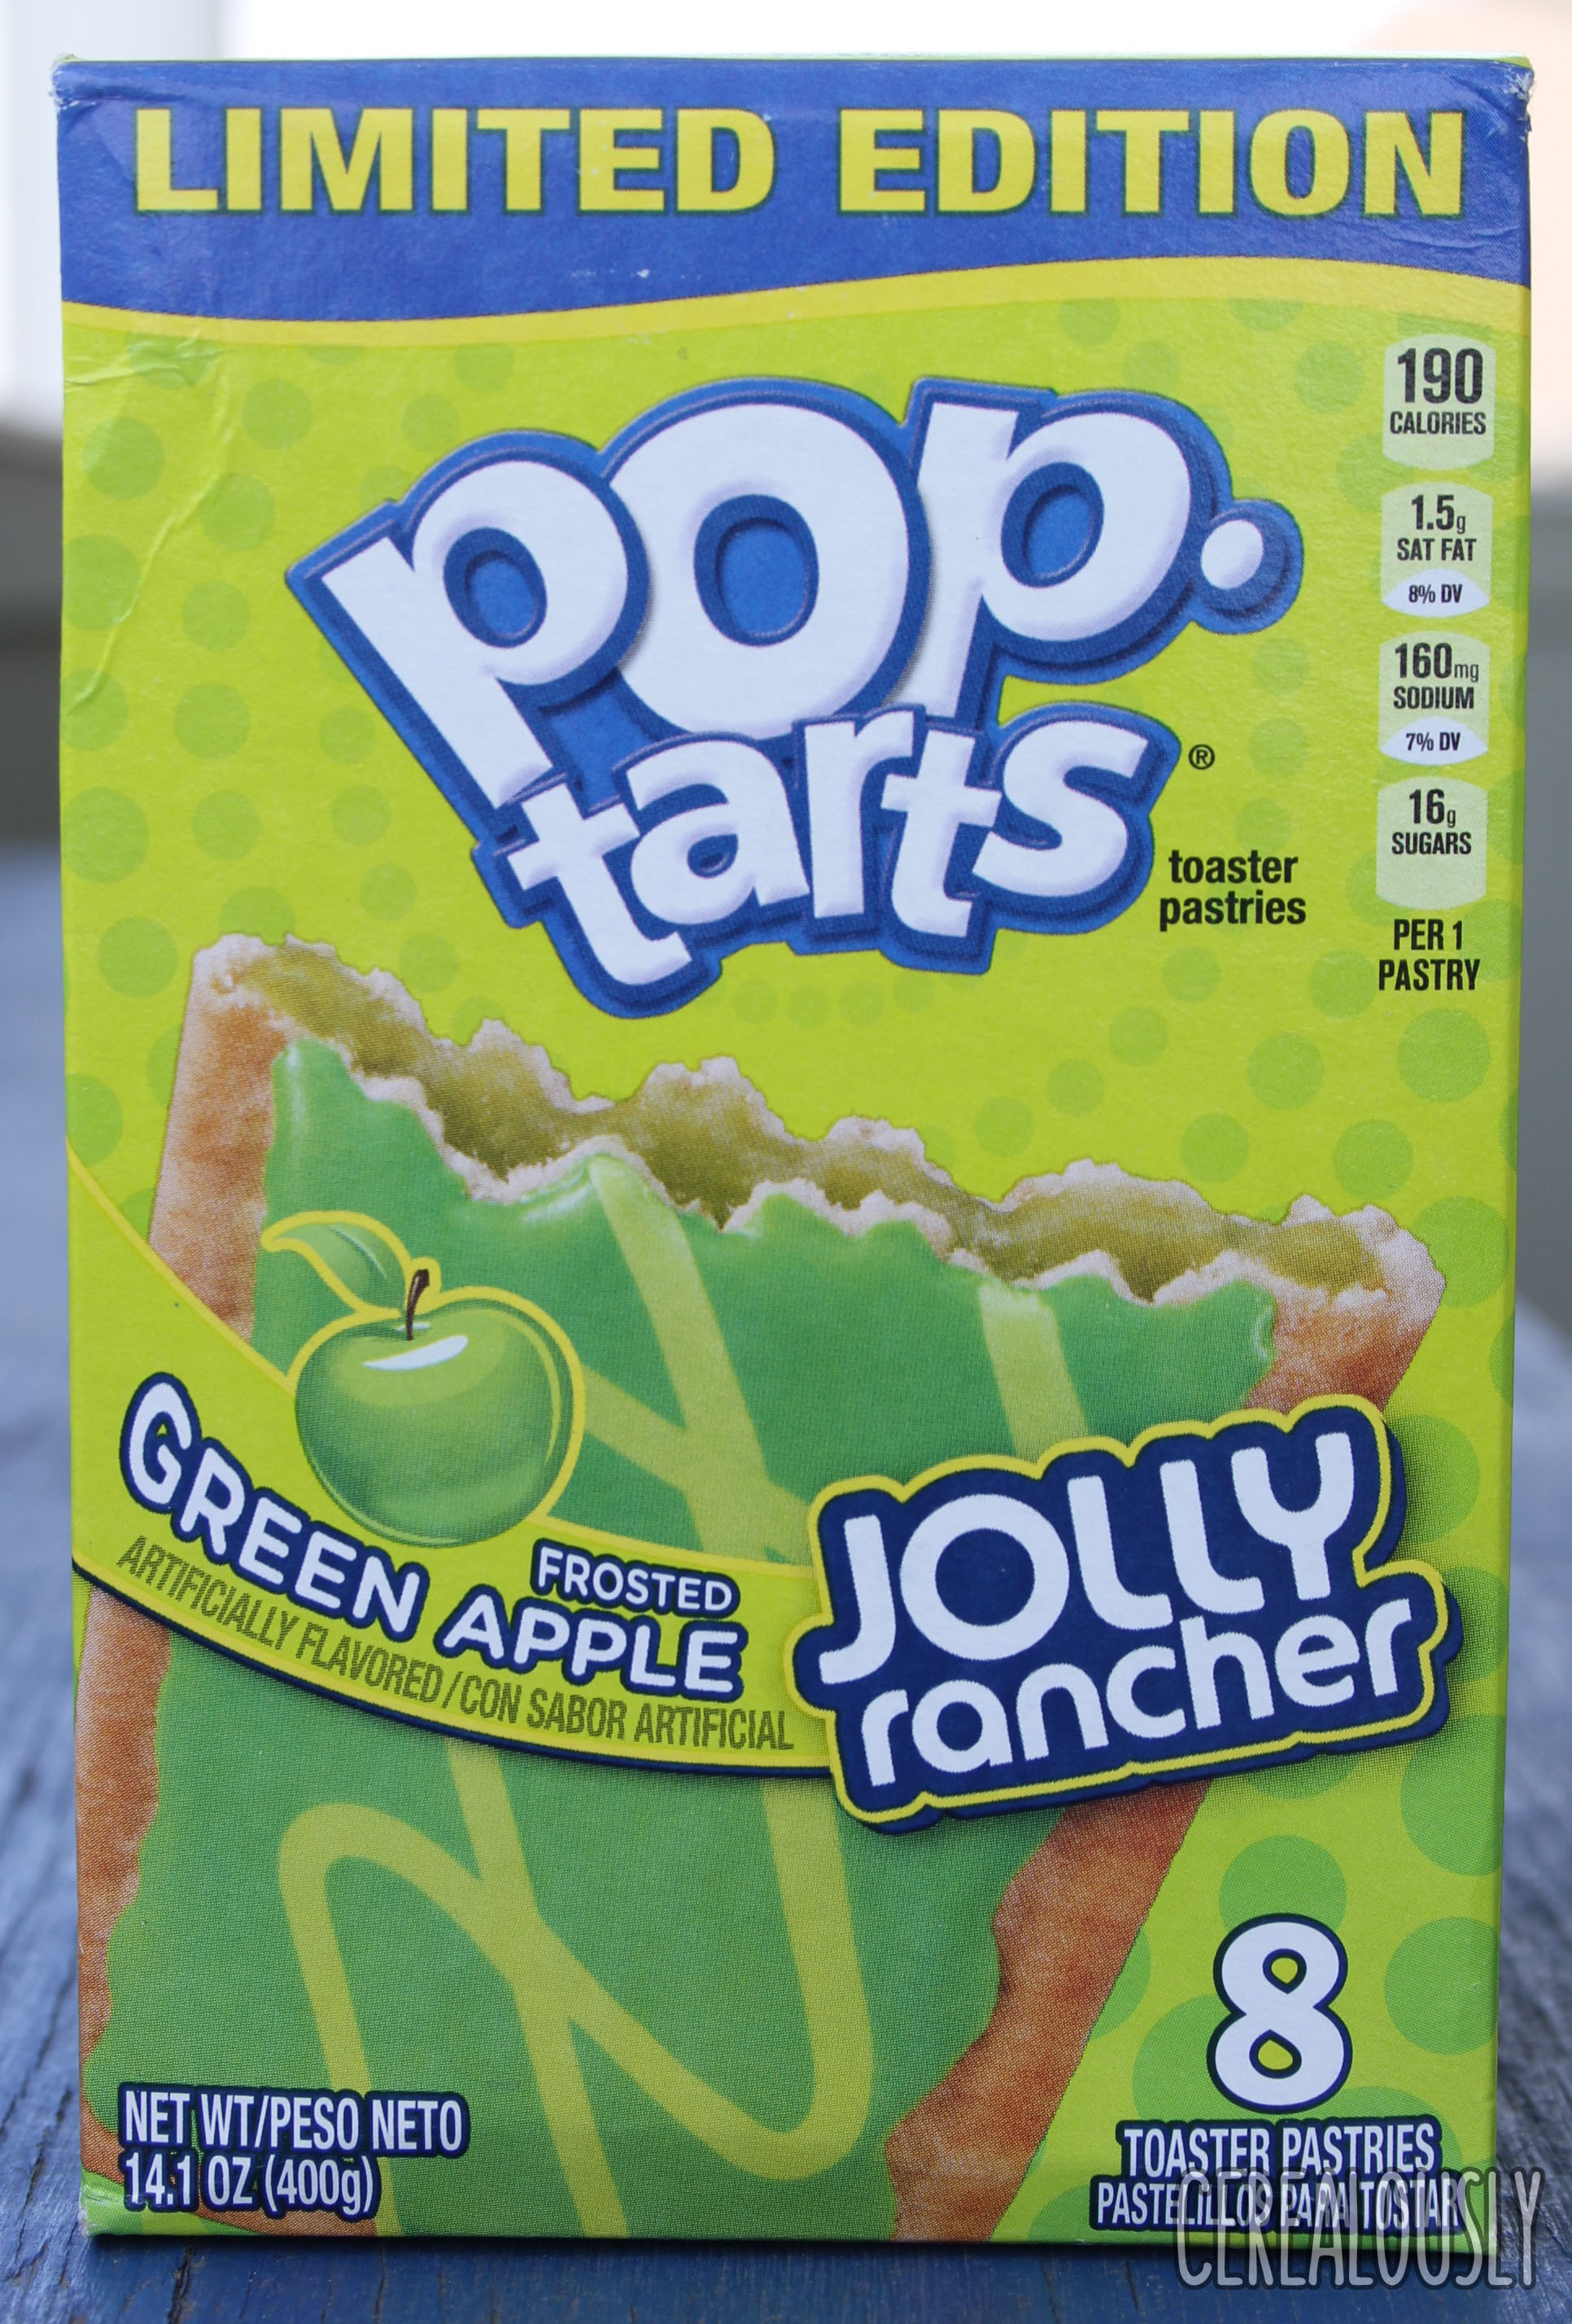 Sour Green Apple Jolly Rancher Pop-Tarts REVIEW! Time to